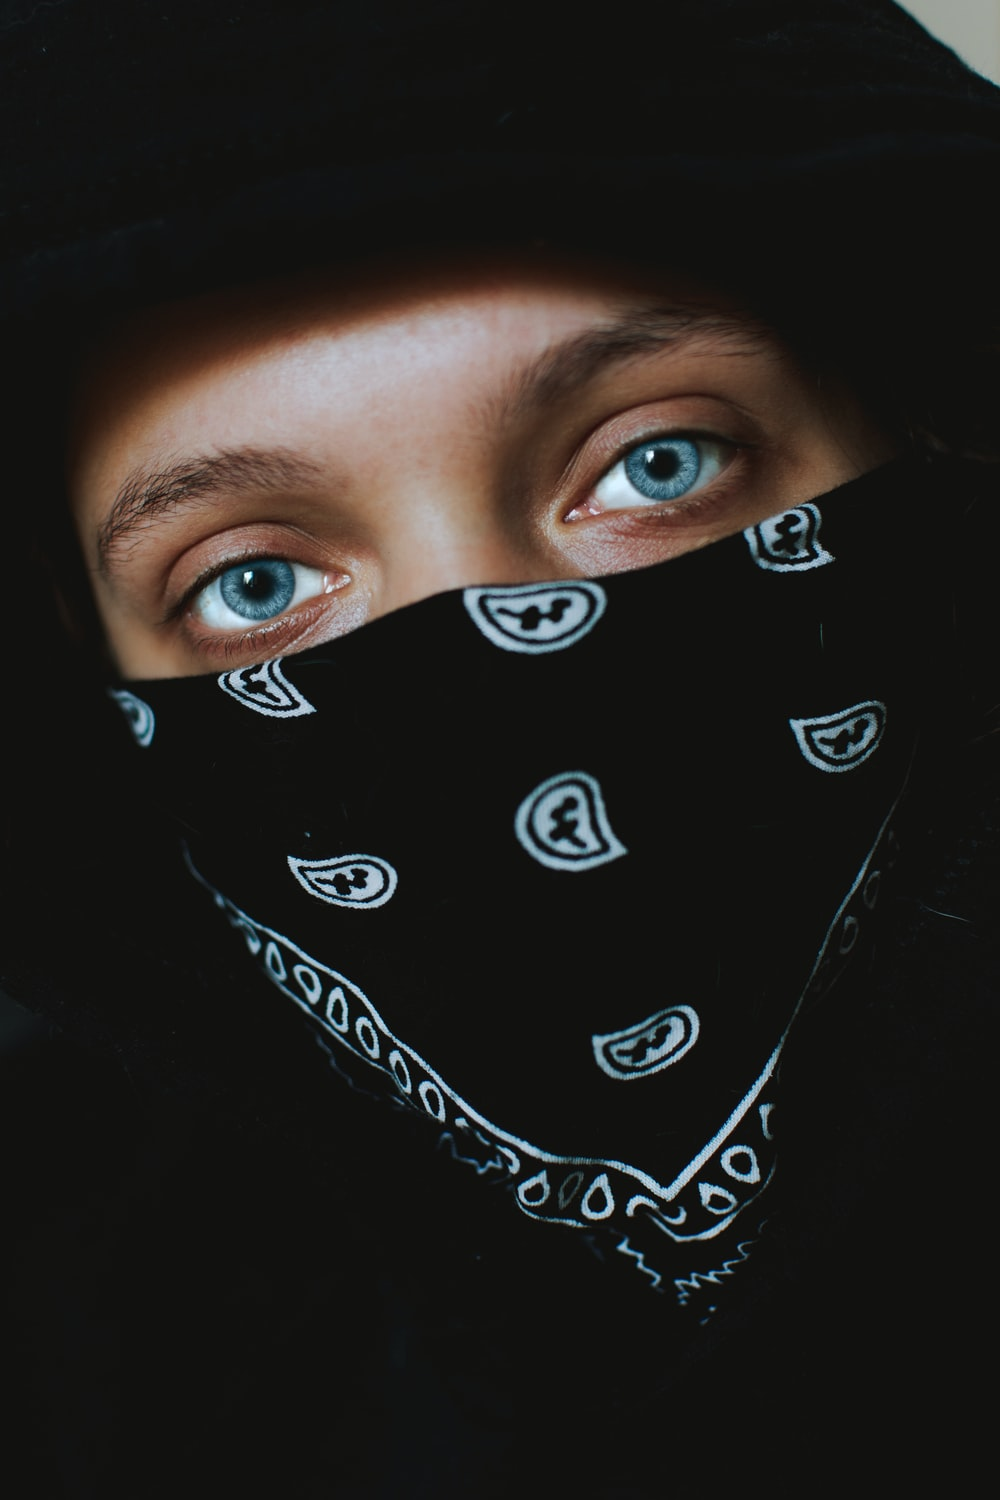 person in black and white paisley bandana